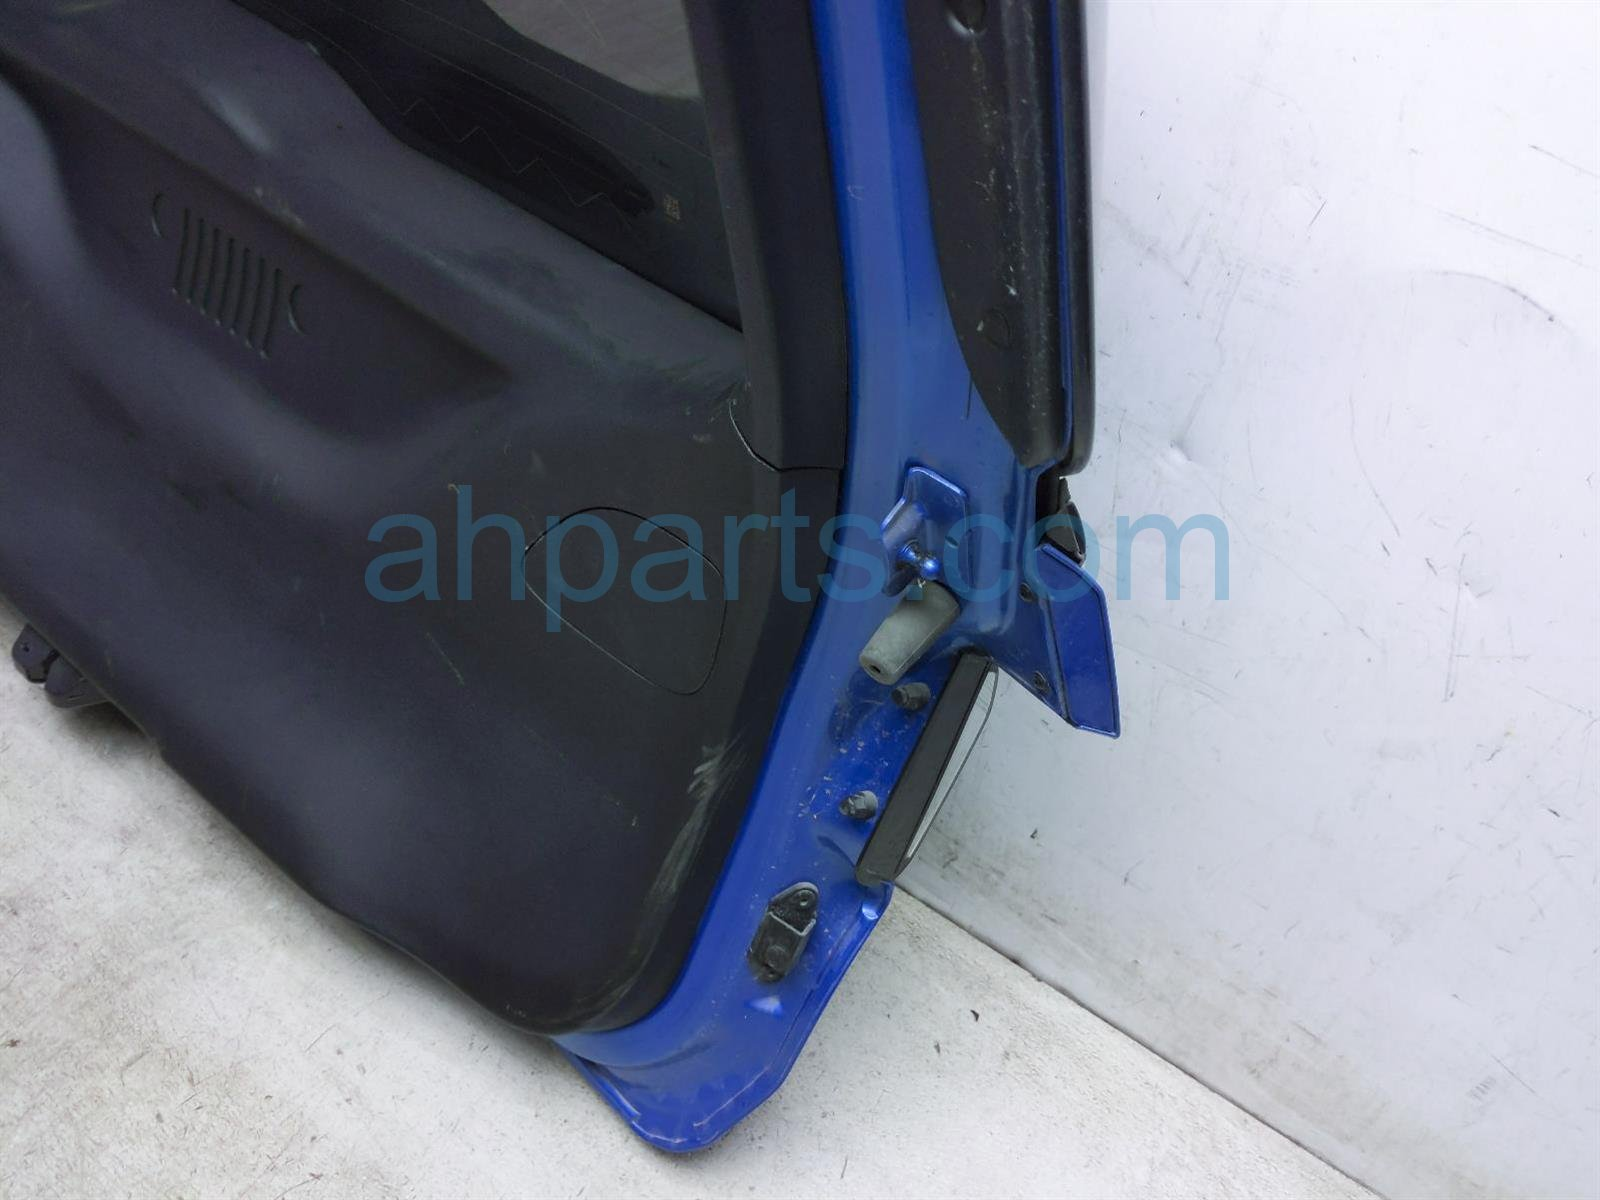 2018 Jeep Compass Deck Trunk Lid Lift Gate / Tail Gate   Blue 68242348AA Replacement